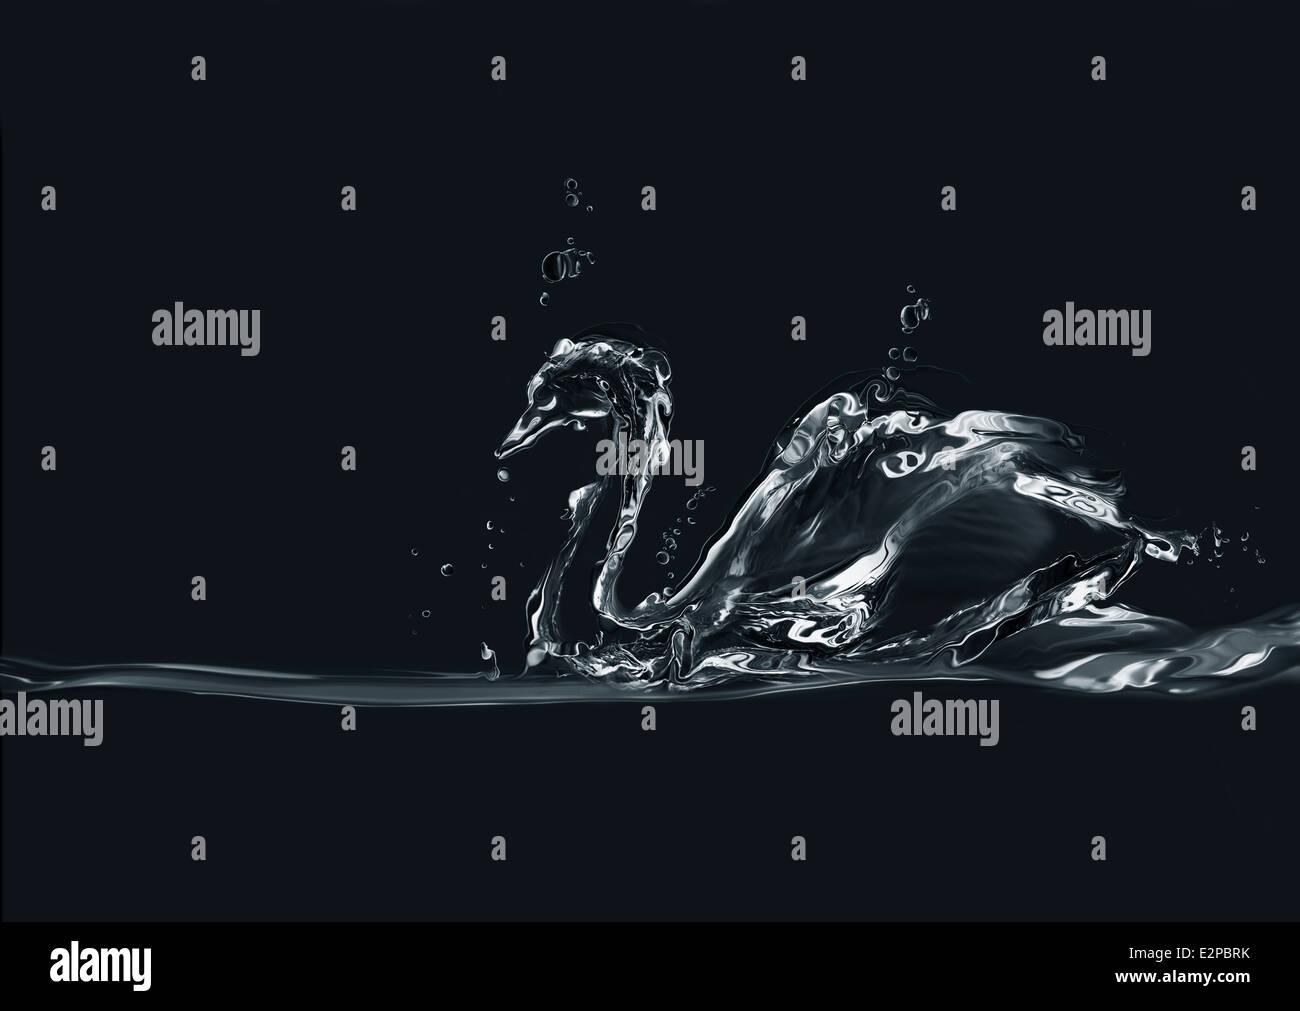 A silhouette of a swan made of water on black background. - Stock Image